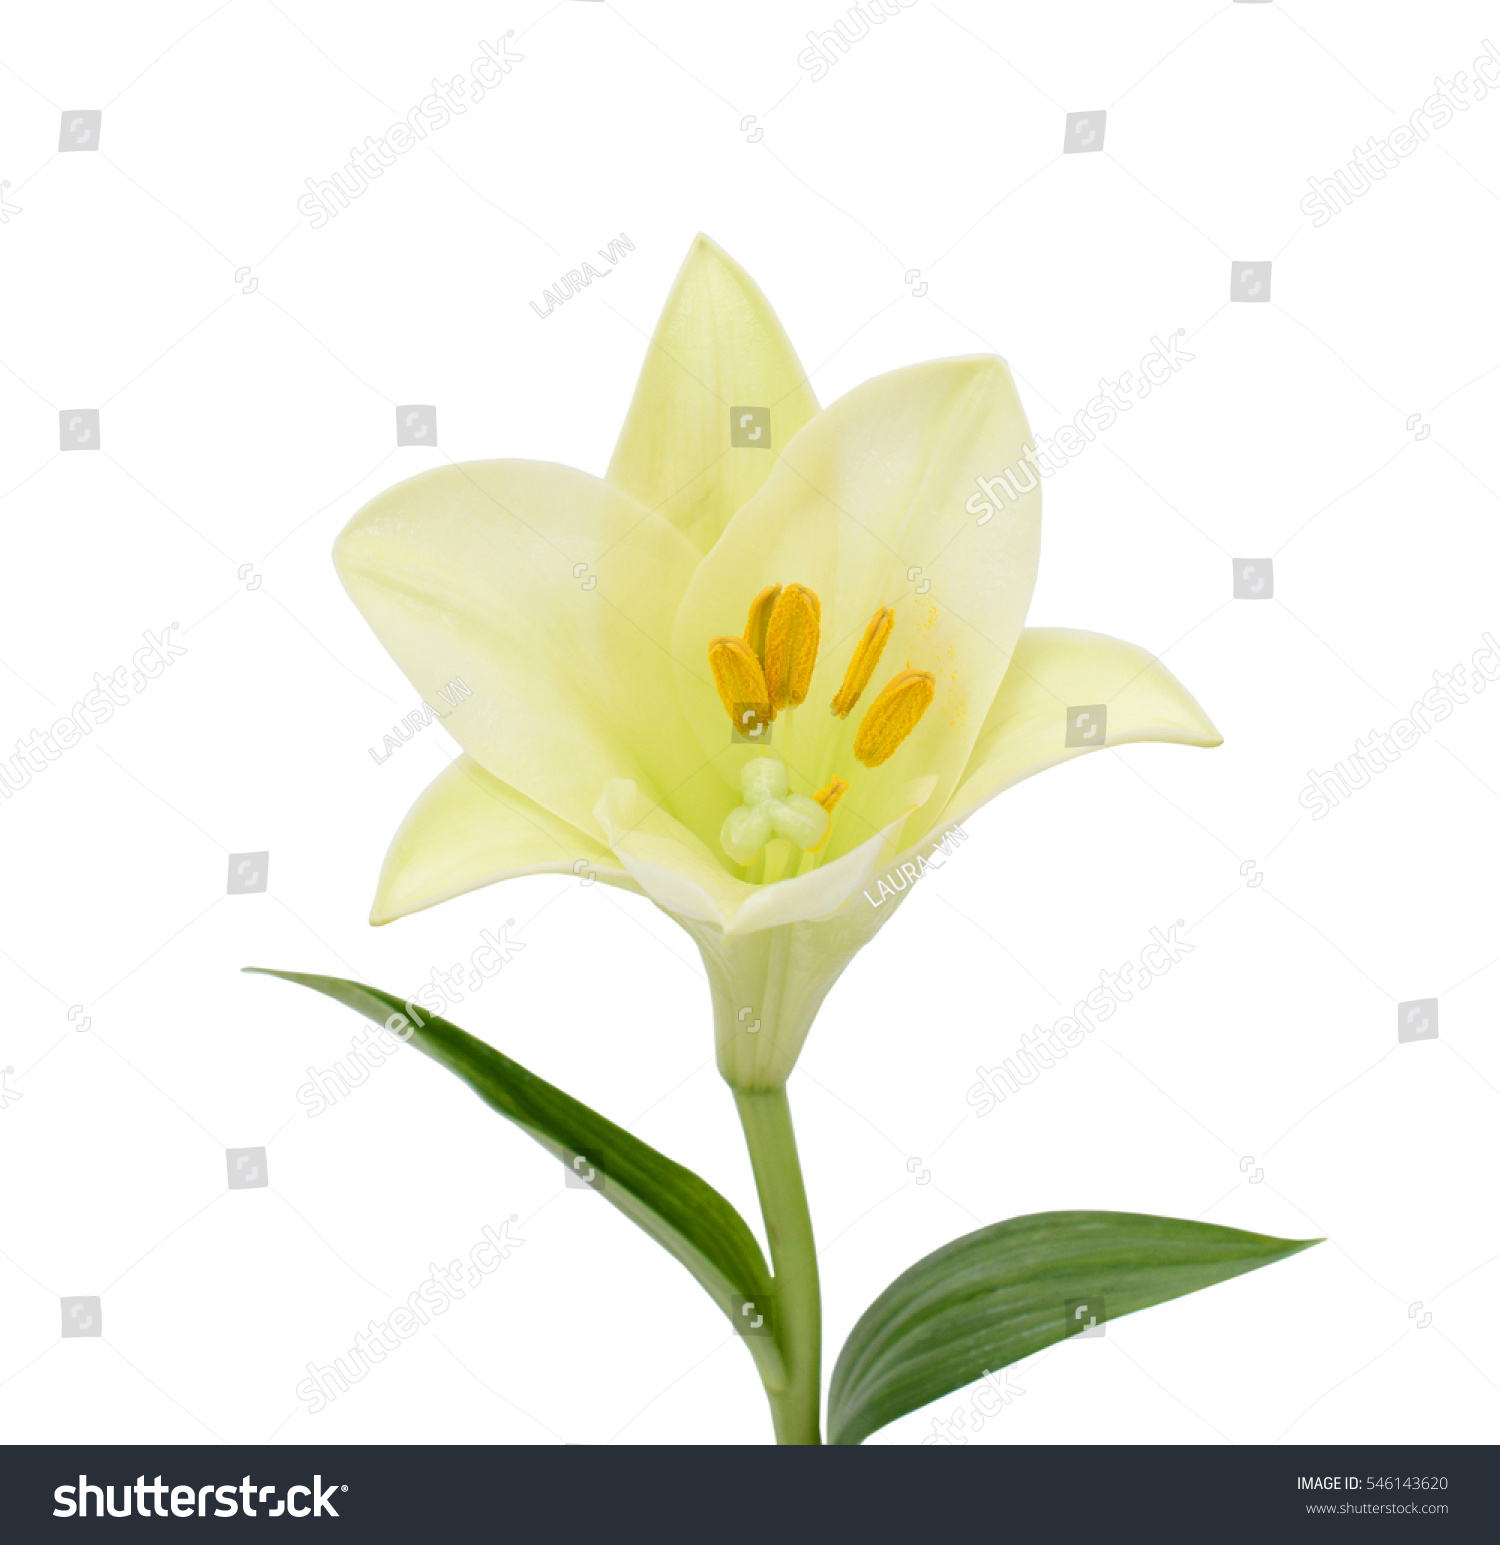 Beautiful white easter lily flower isolated on white background ez id 546143620 izmirmasajfo